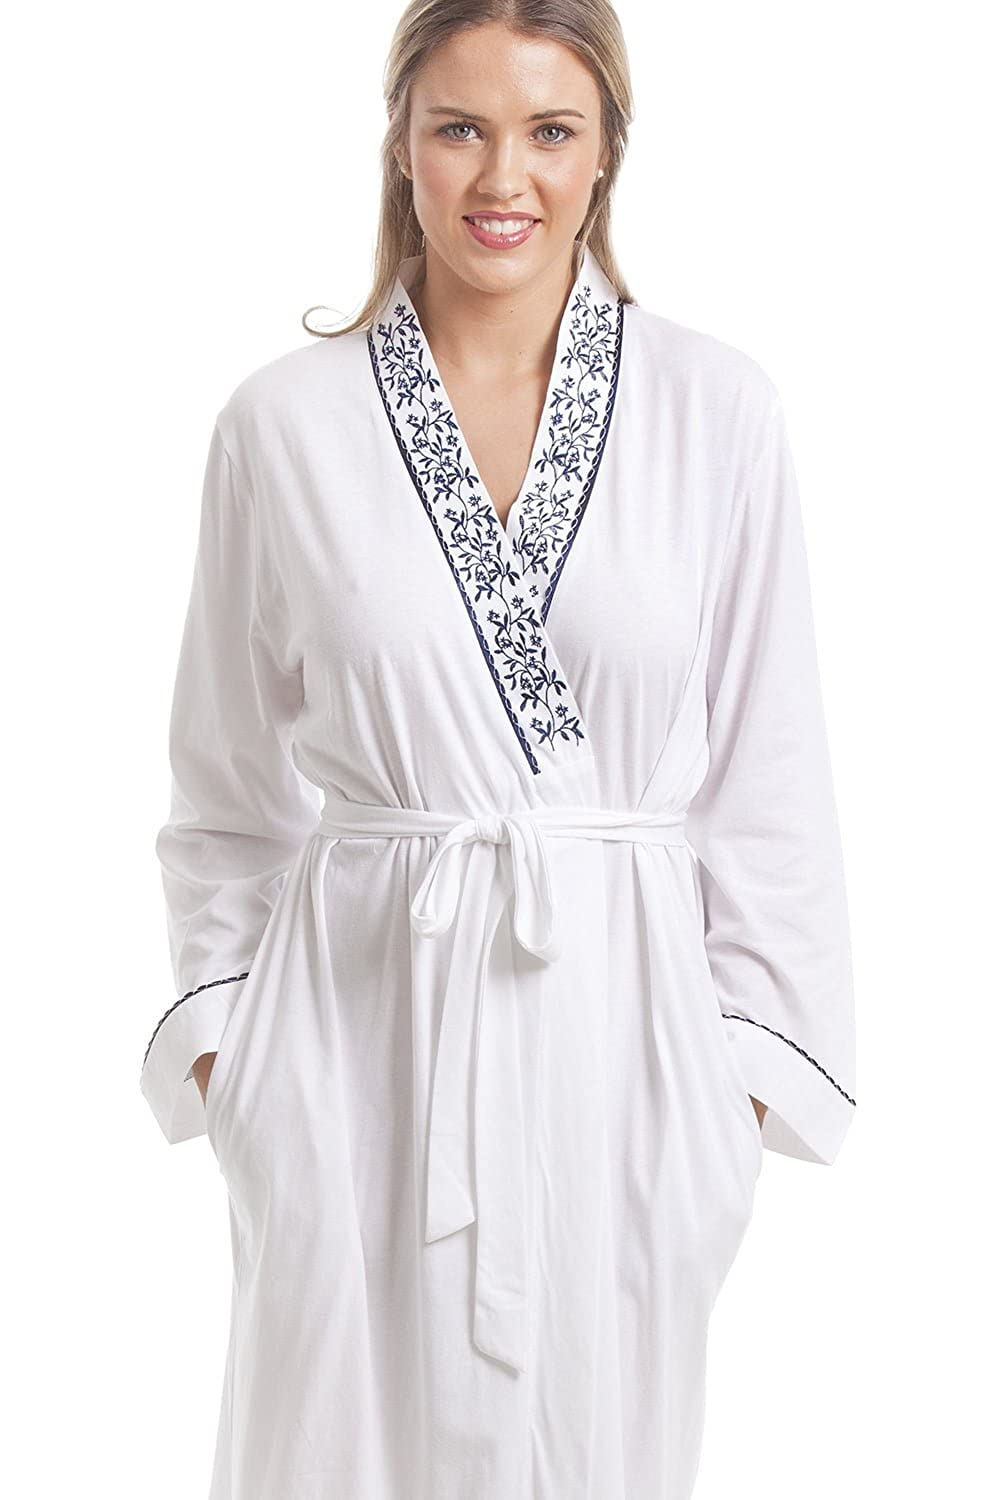 Camille Classic Womens Ladies White Bathrobe with Navy Floral Design at  Amazon Women s Clothing store  a44f25cce